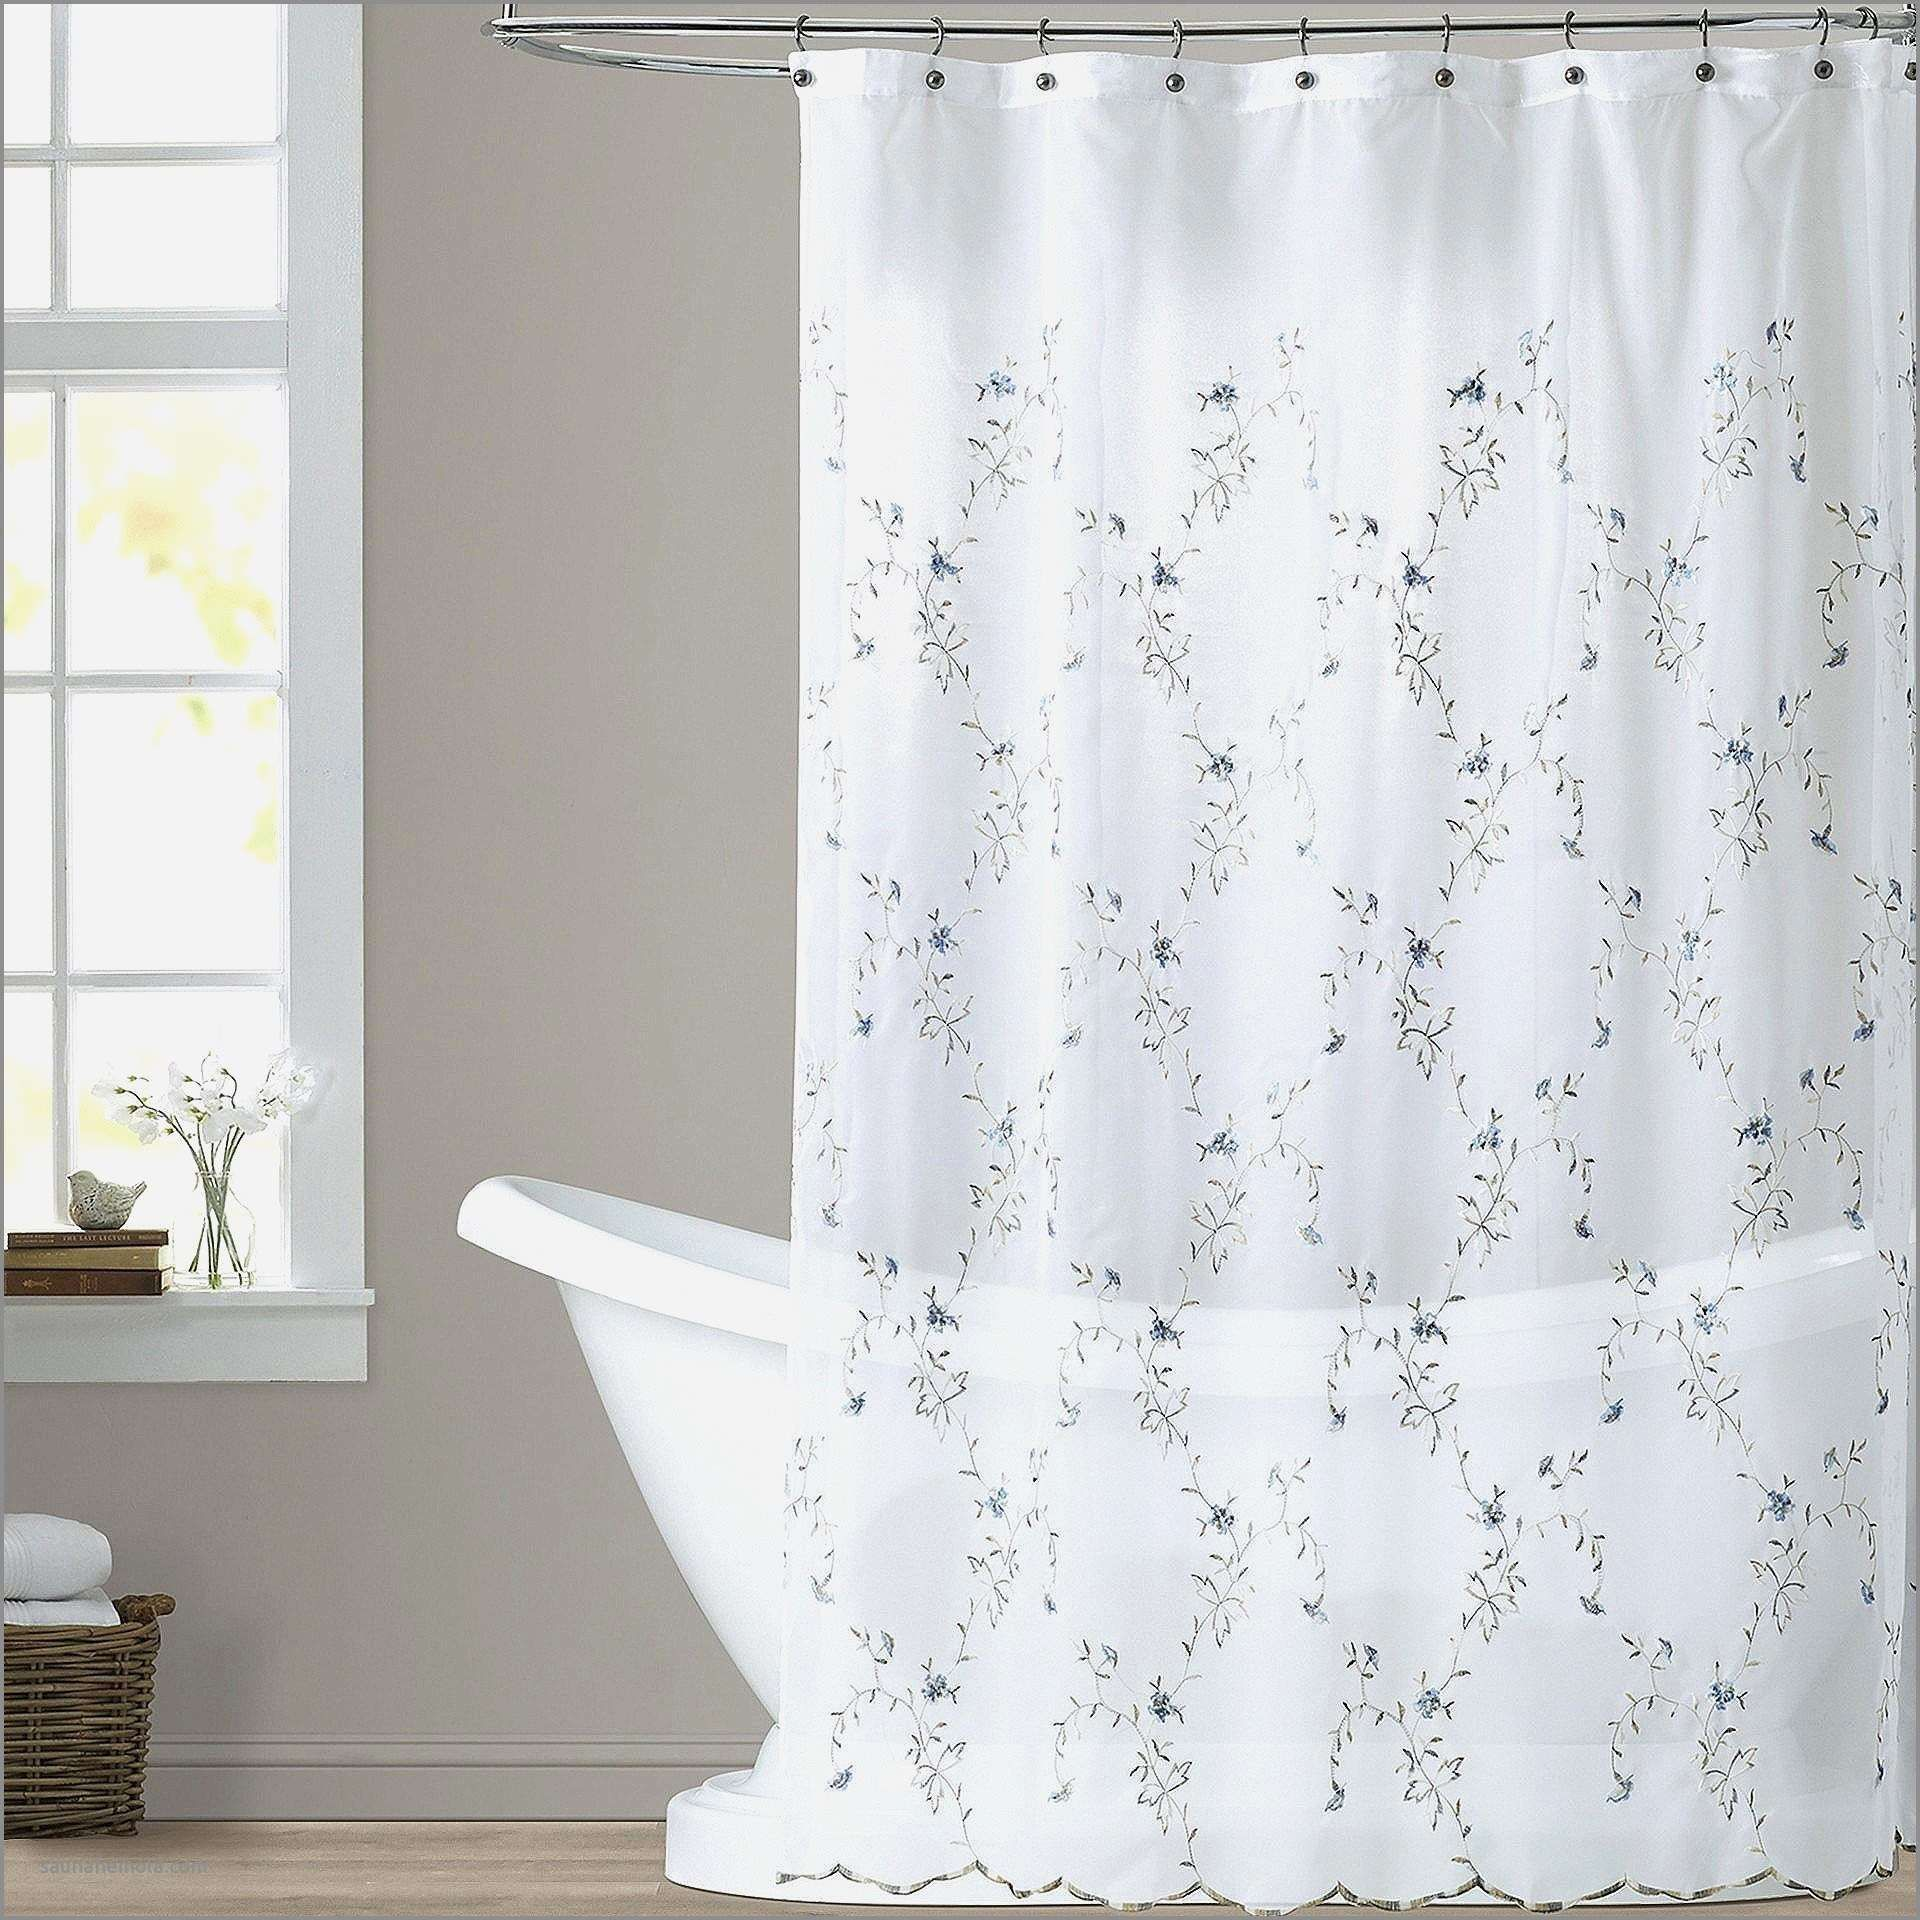 Inspirations For Cute Baby Newborn Fashion Luxury Mold Growing Clothes Bathroom Shower Curtains White Shower Curtain Modern Shower Curtains